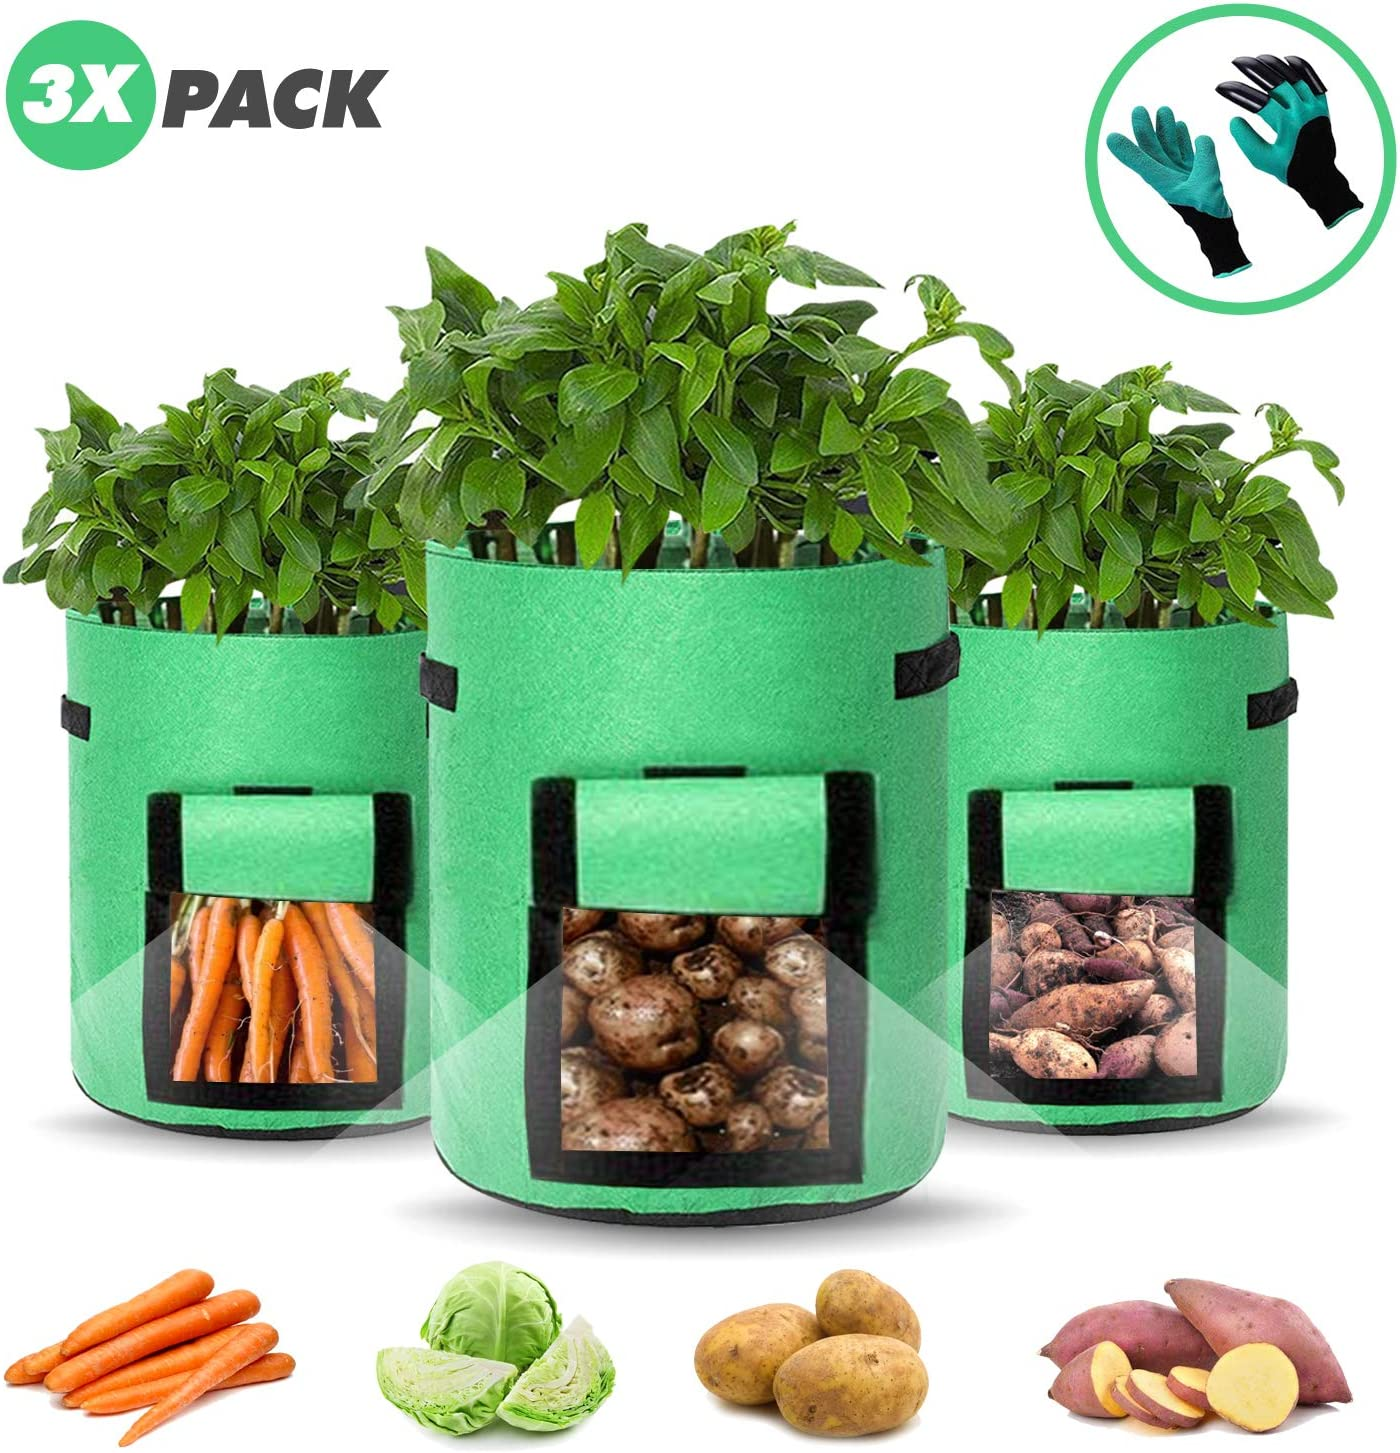 30 Litres // 7 Gallon Size /& Includes 1 Pair of Garden Gloves Outdoor Fabric Garden Planters ZACAL 3x Potato Grow Bags Plant Pots Perfect for Vegetables Plants /& Flowers Herbs